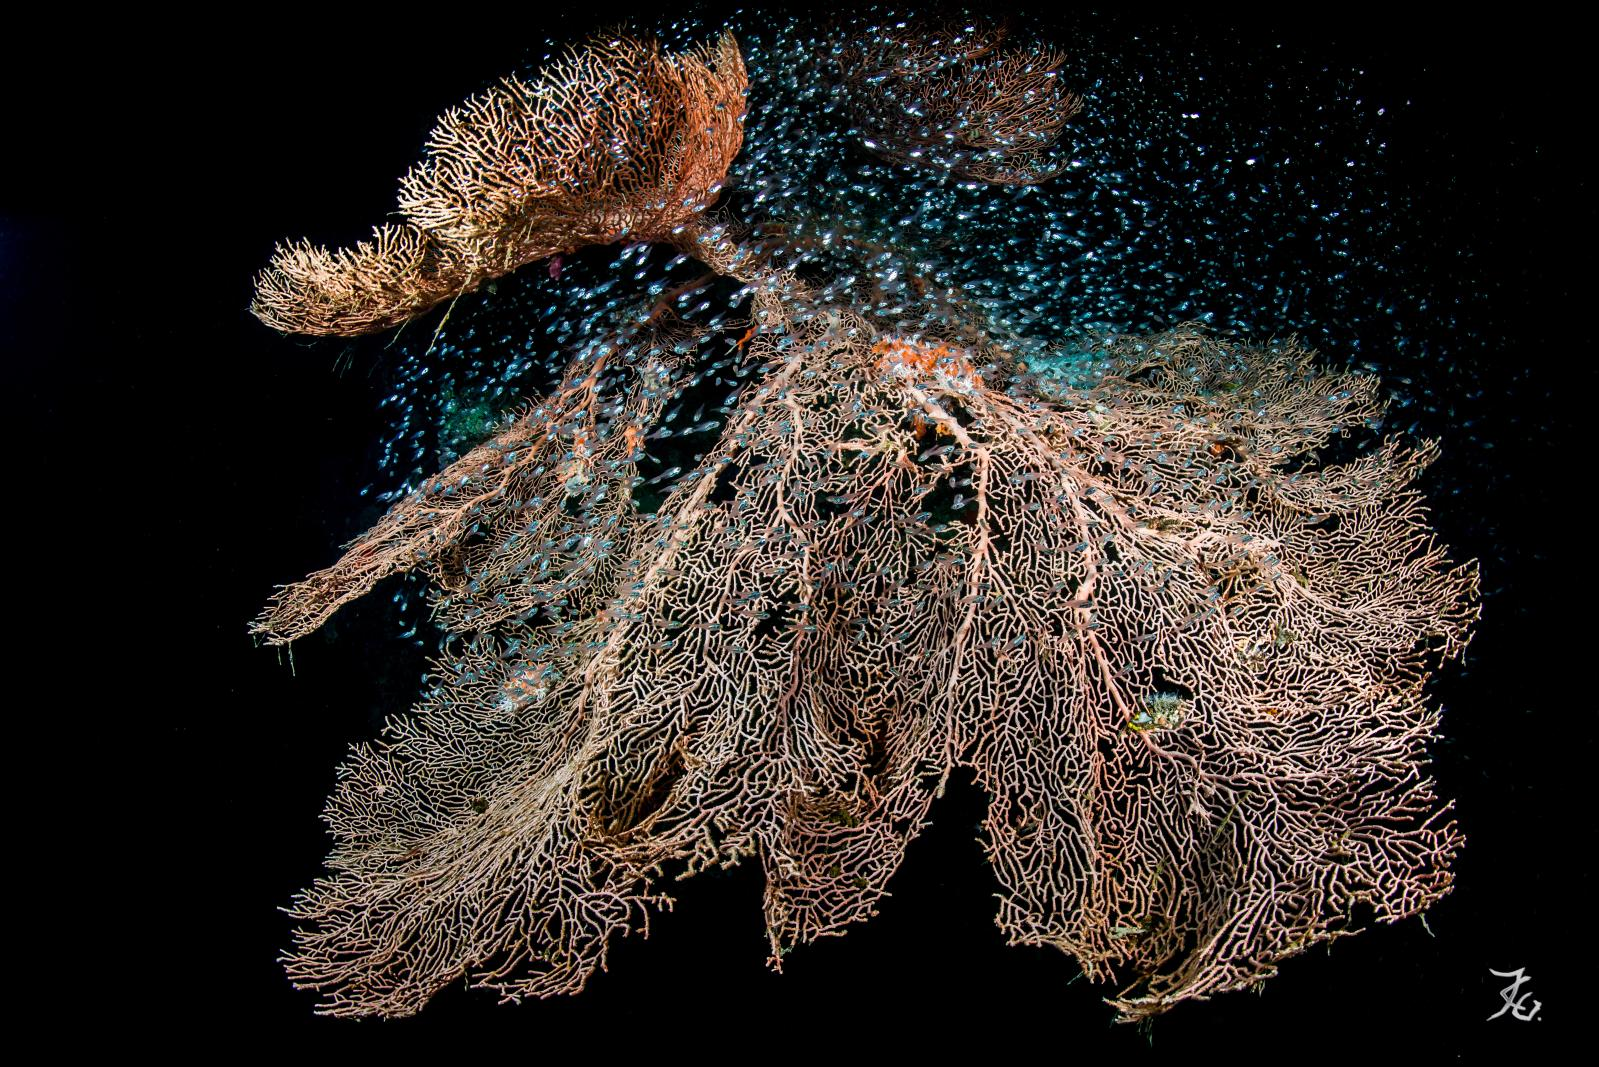 Jean-Claude Grignard, Stunning Lace. Gorgonia and Glass Fish. Utopia reef Quseir, Egypt, photographie, 80x120cm.